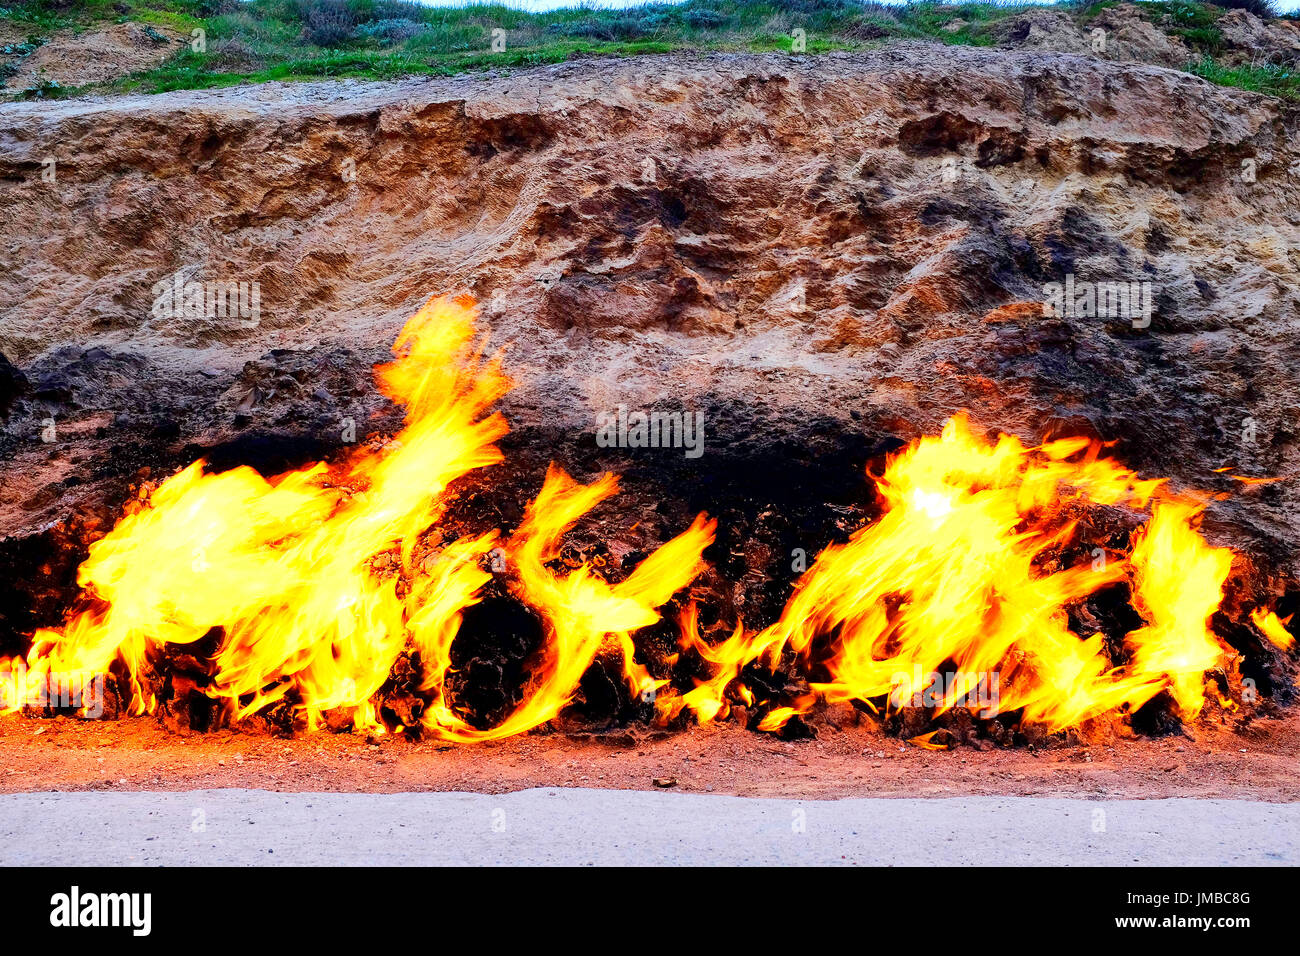 Hydrocarbon Fire Stock Photos Amp Hydrocarbon Fire Stock